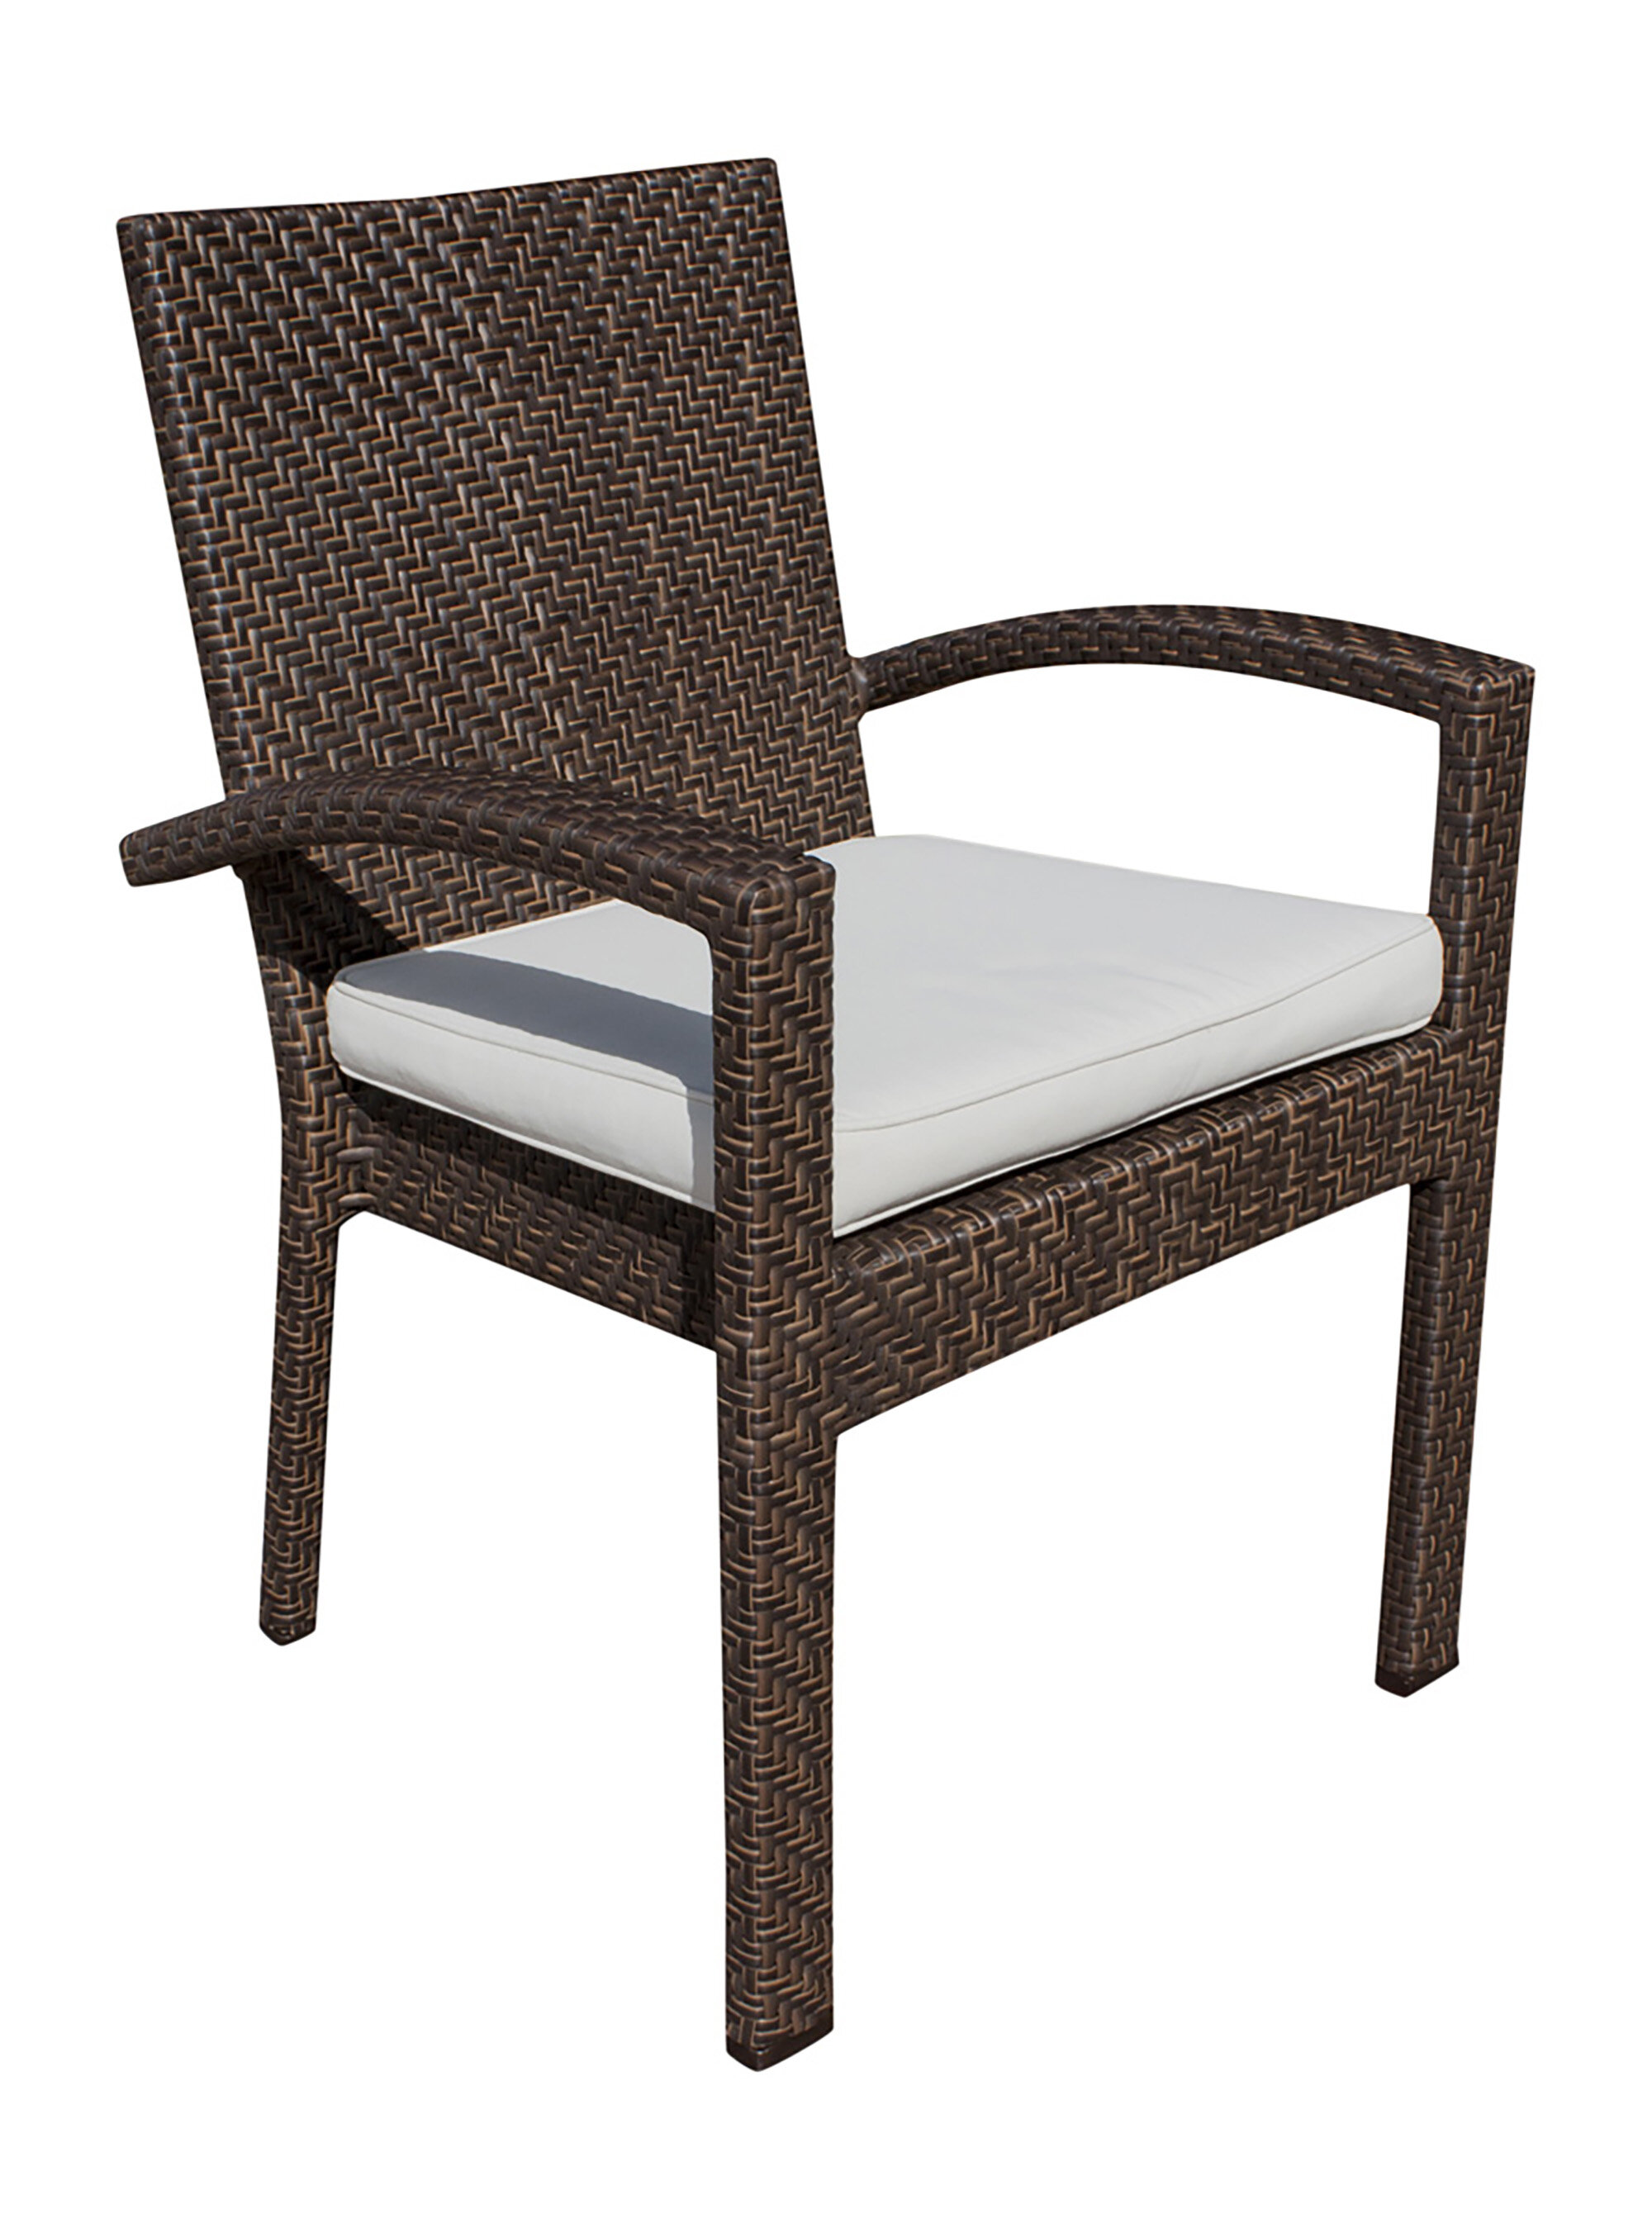 Andover mills ferraro stacking patio dining chair with cushion wayfair